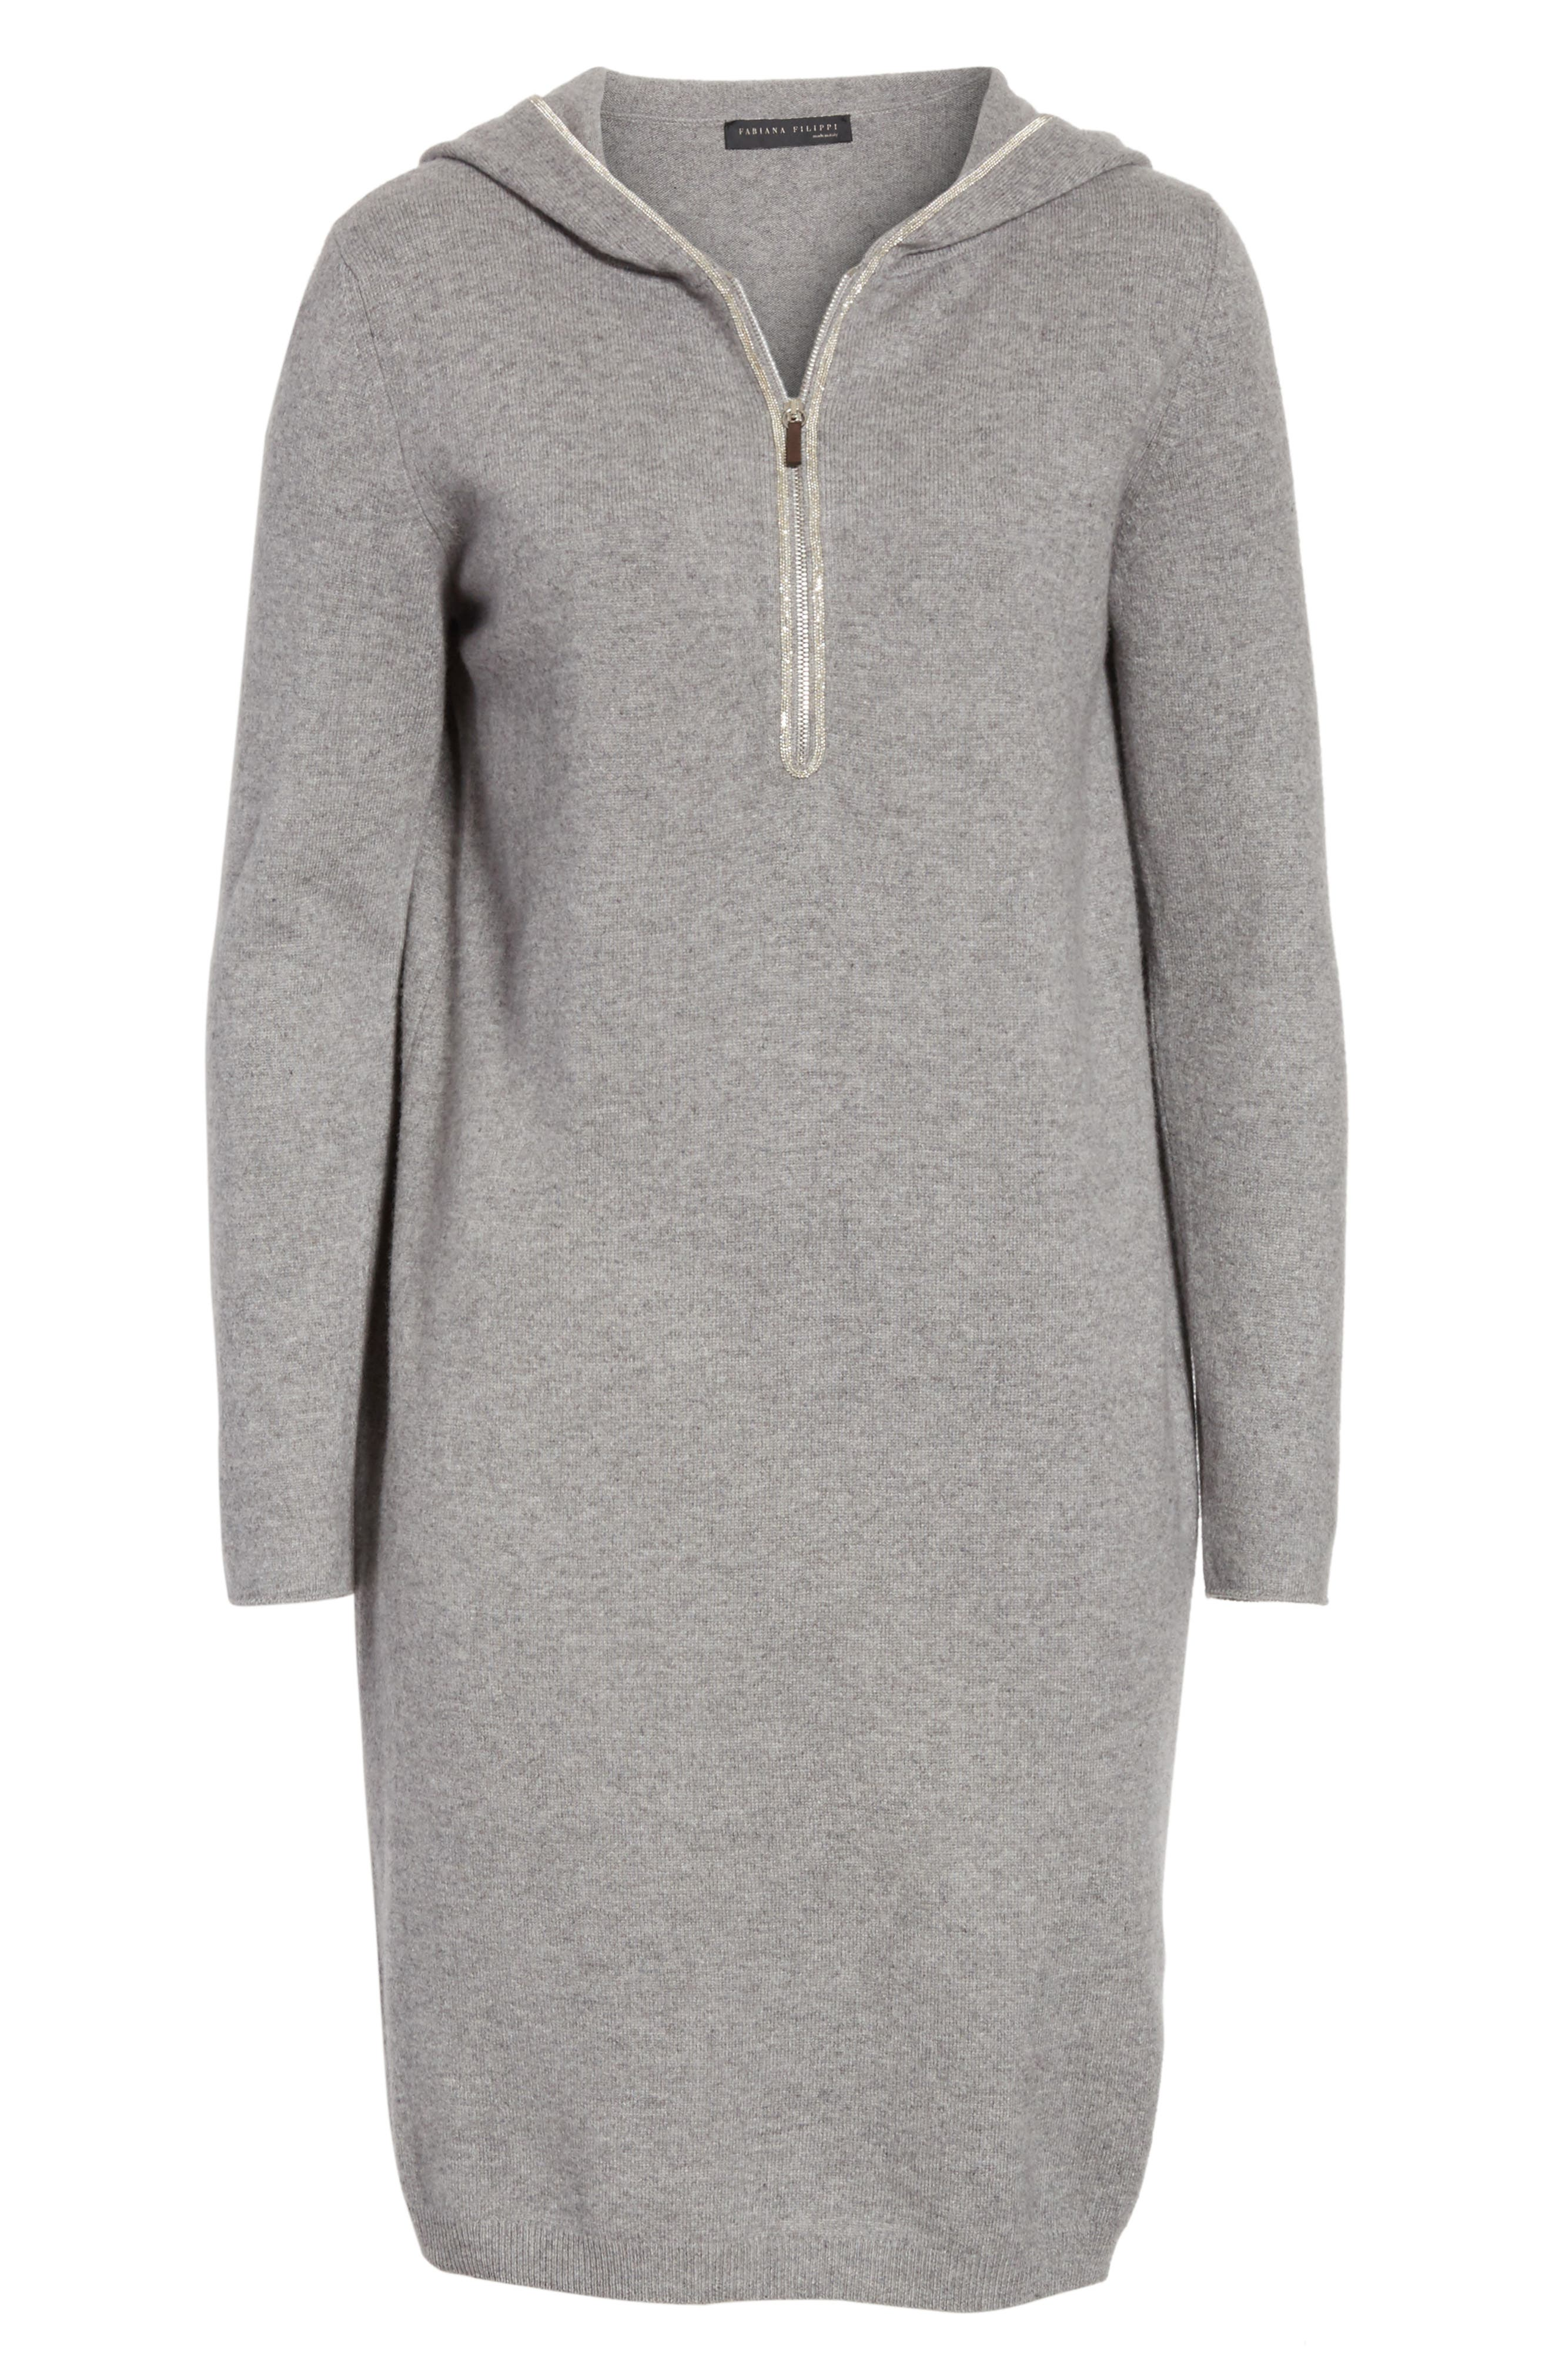 Wool, Silk & Cashmere Hooded Dress,                             Alternate thumbnail 6, color,                             020